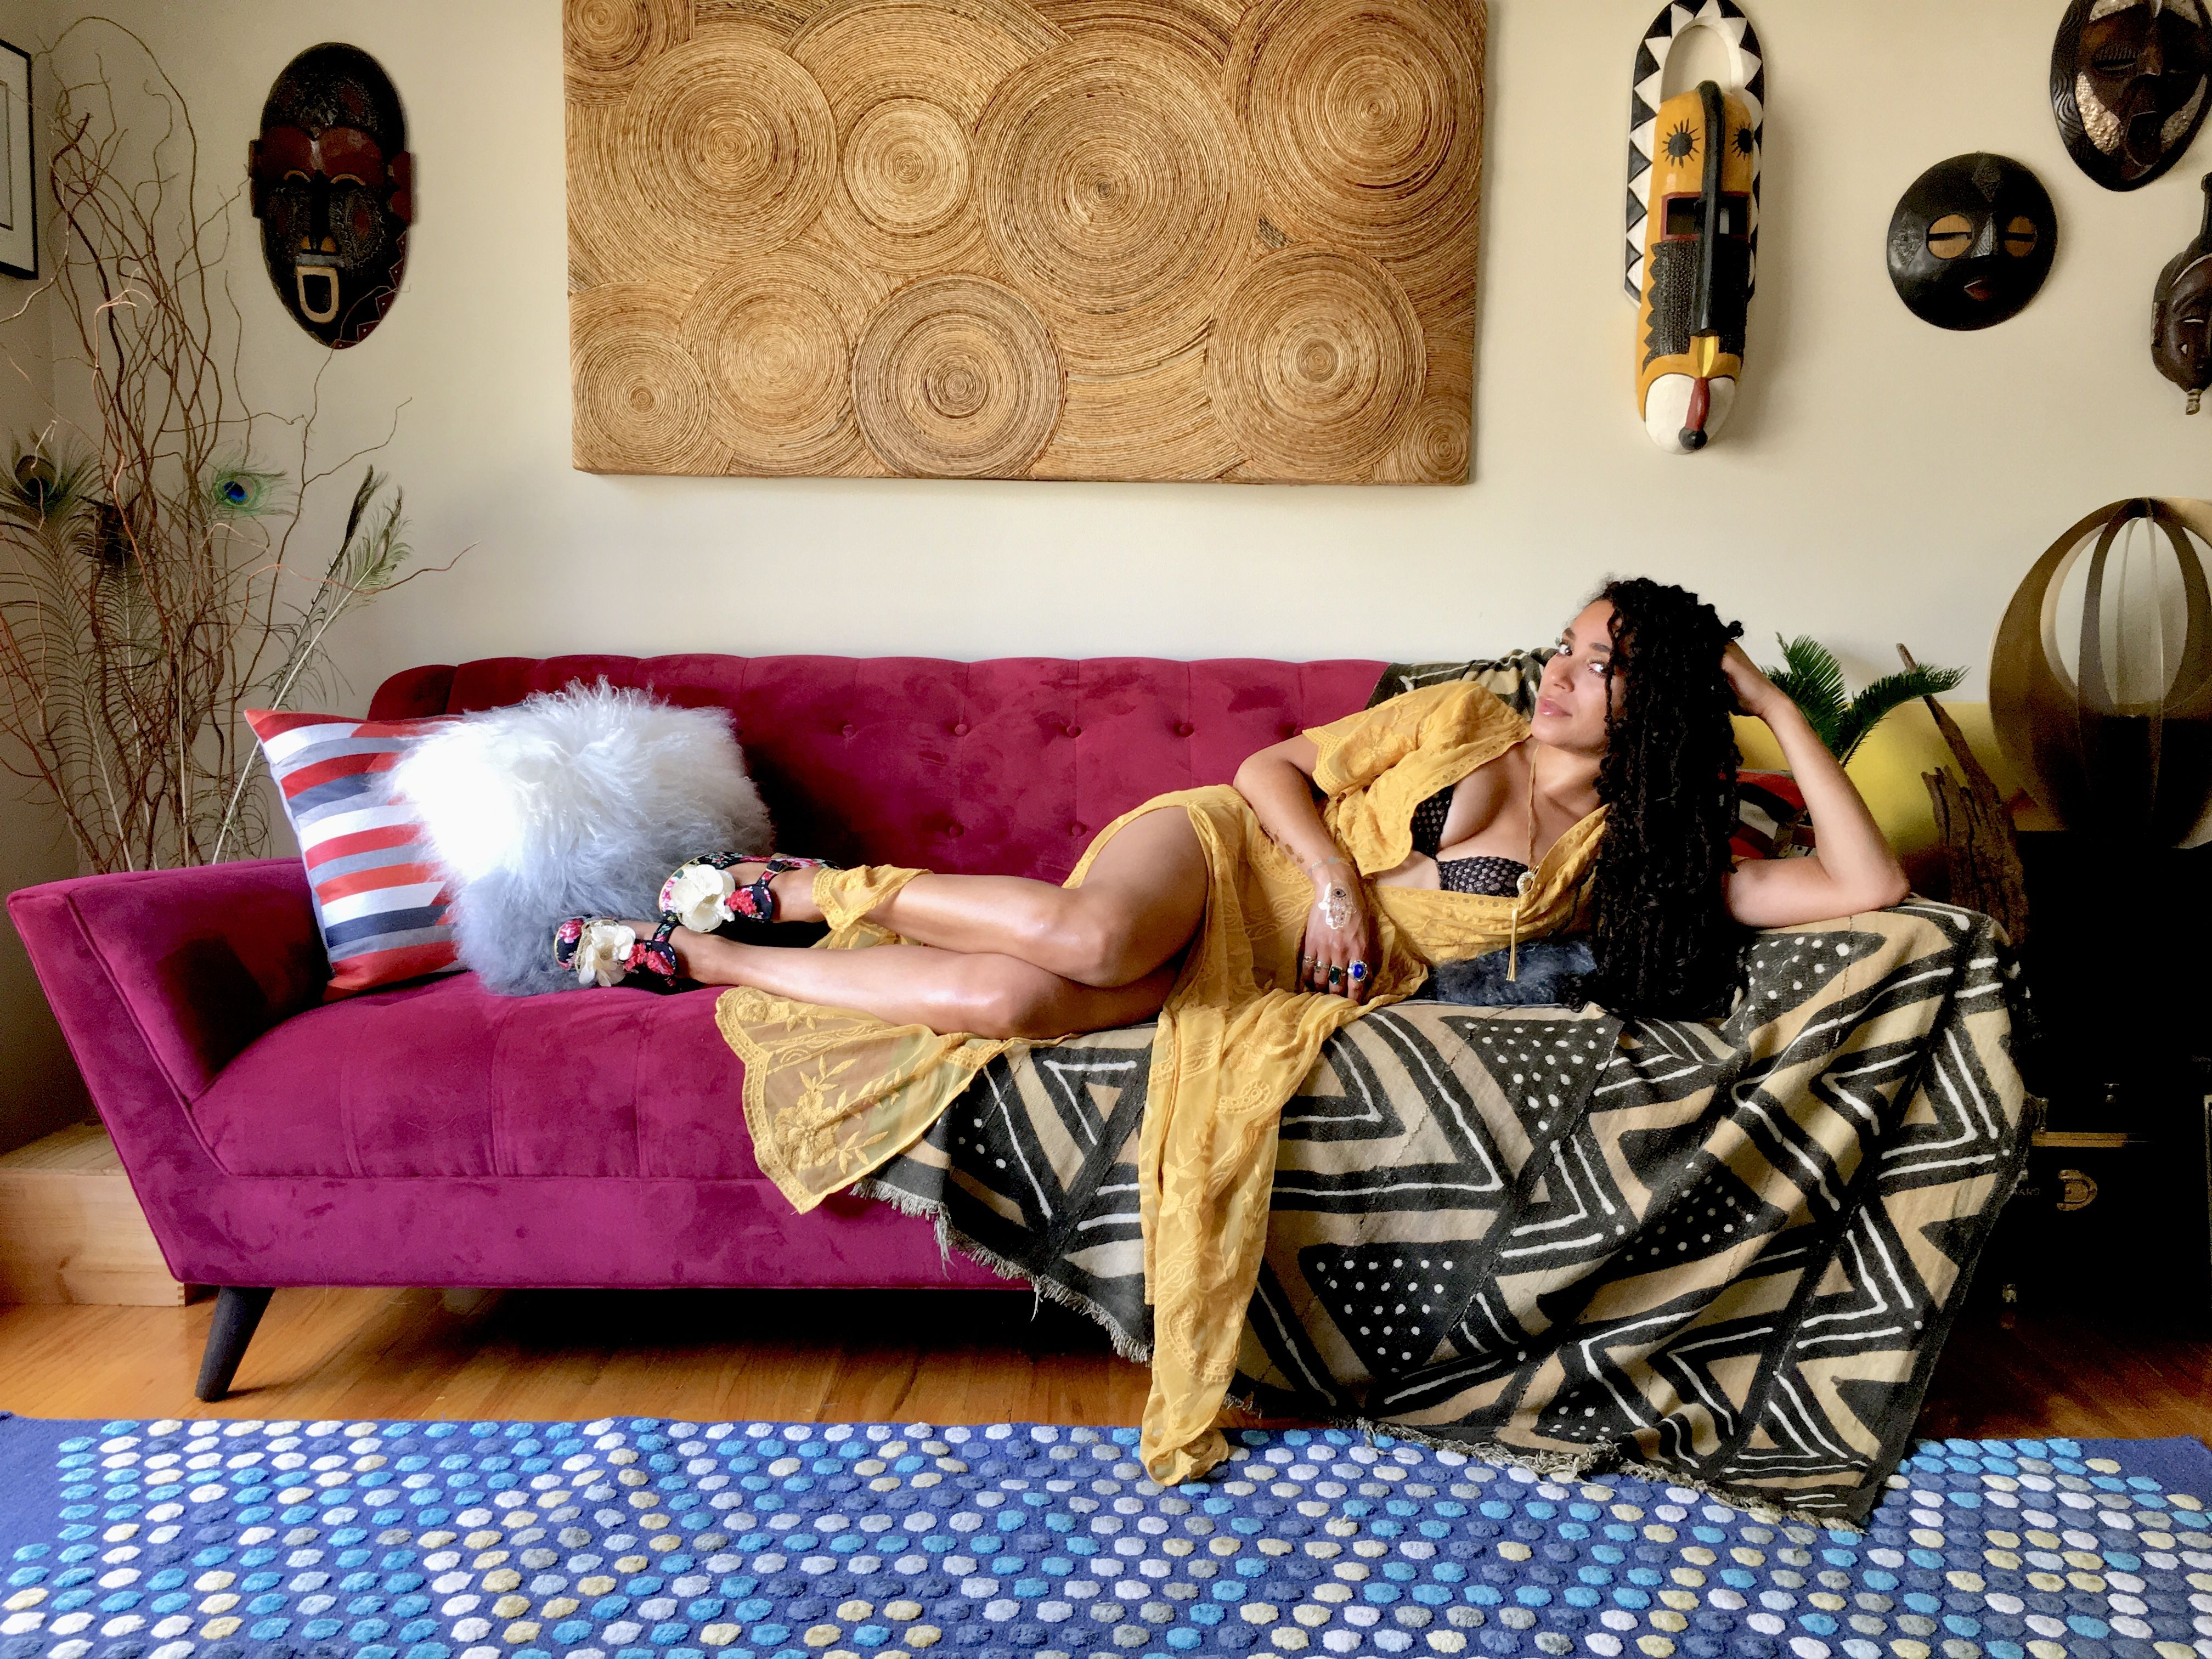 Detroit singer Mayaeni in The Couch Beautiful series